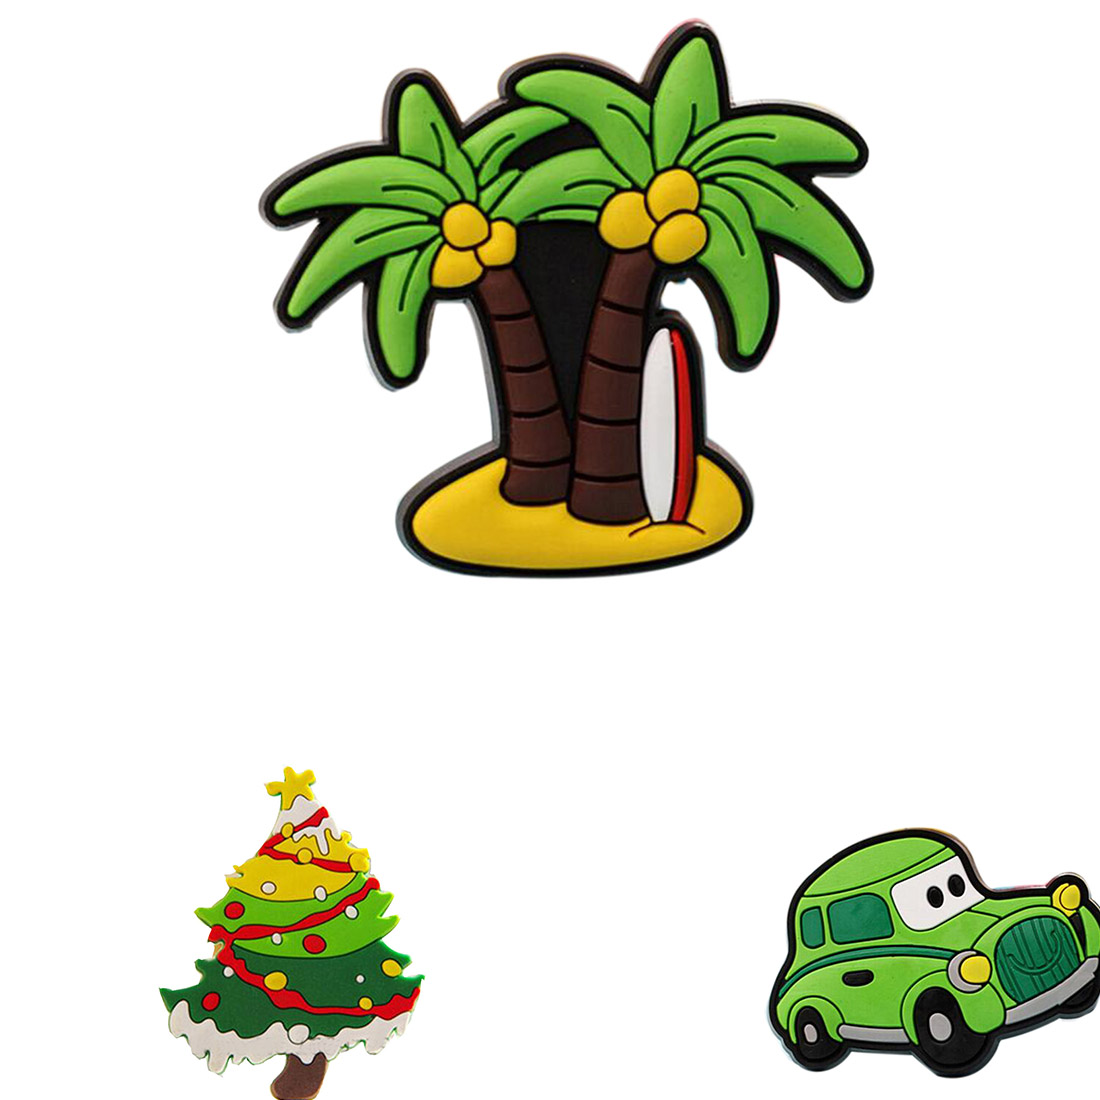 Christmas tree novelty christmas tree china http www gd wholesale com - Creative Car Coconut Palm Christmas Design Fridge Magnets For Kids Small Size Silicon Gel Magnetic Fridge